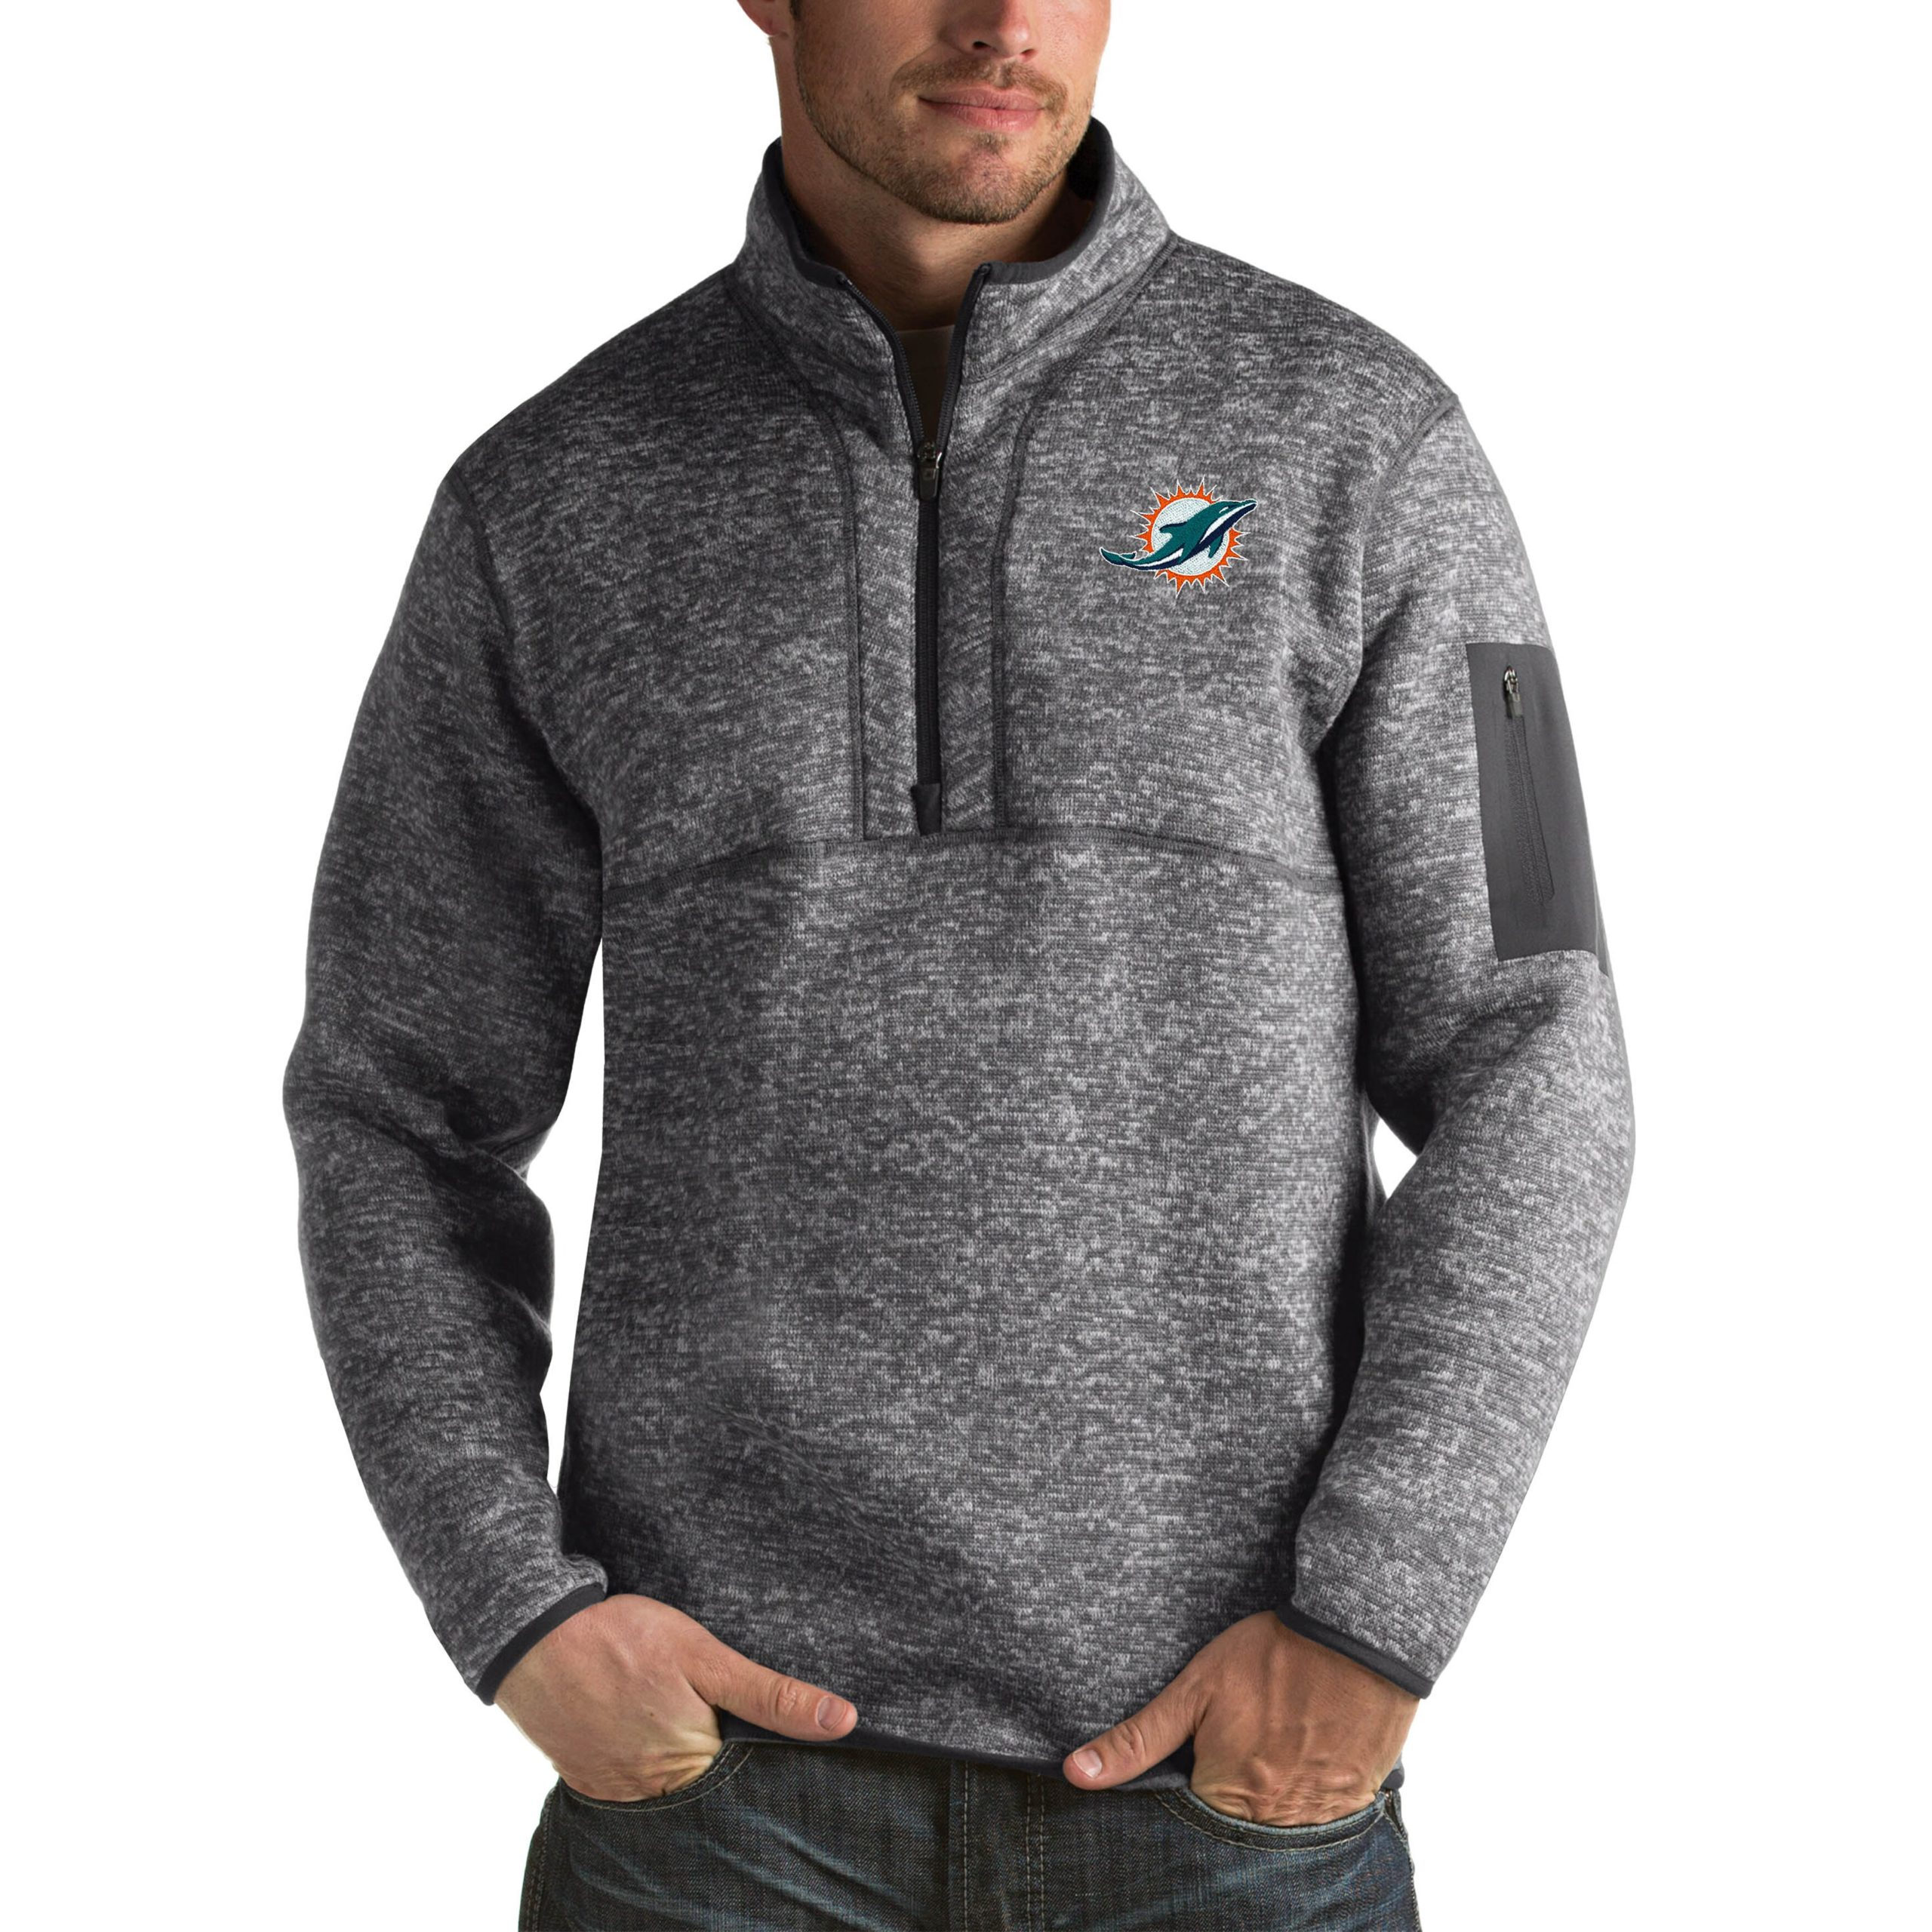 Miami Dolphins Antigua Fortune Big & Tall Quarter-Zip Pullover Jacket - Charcoal